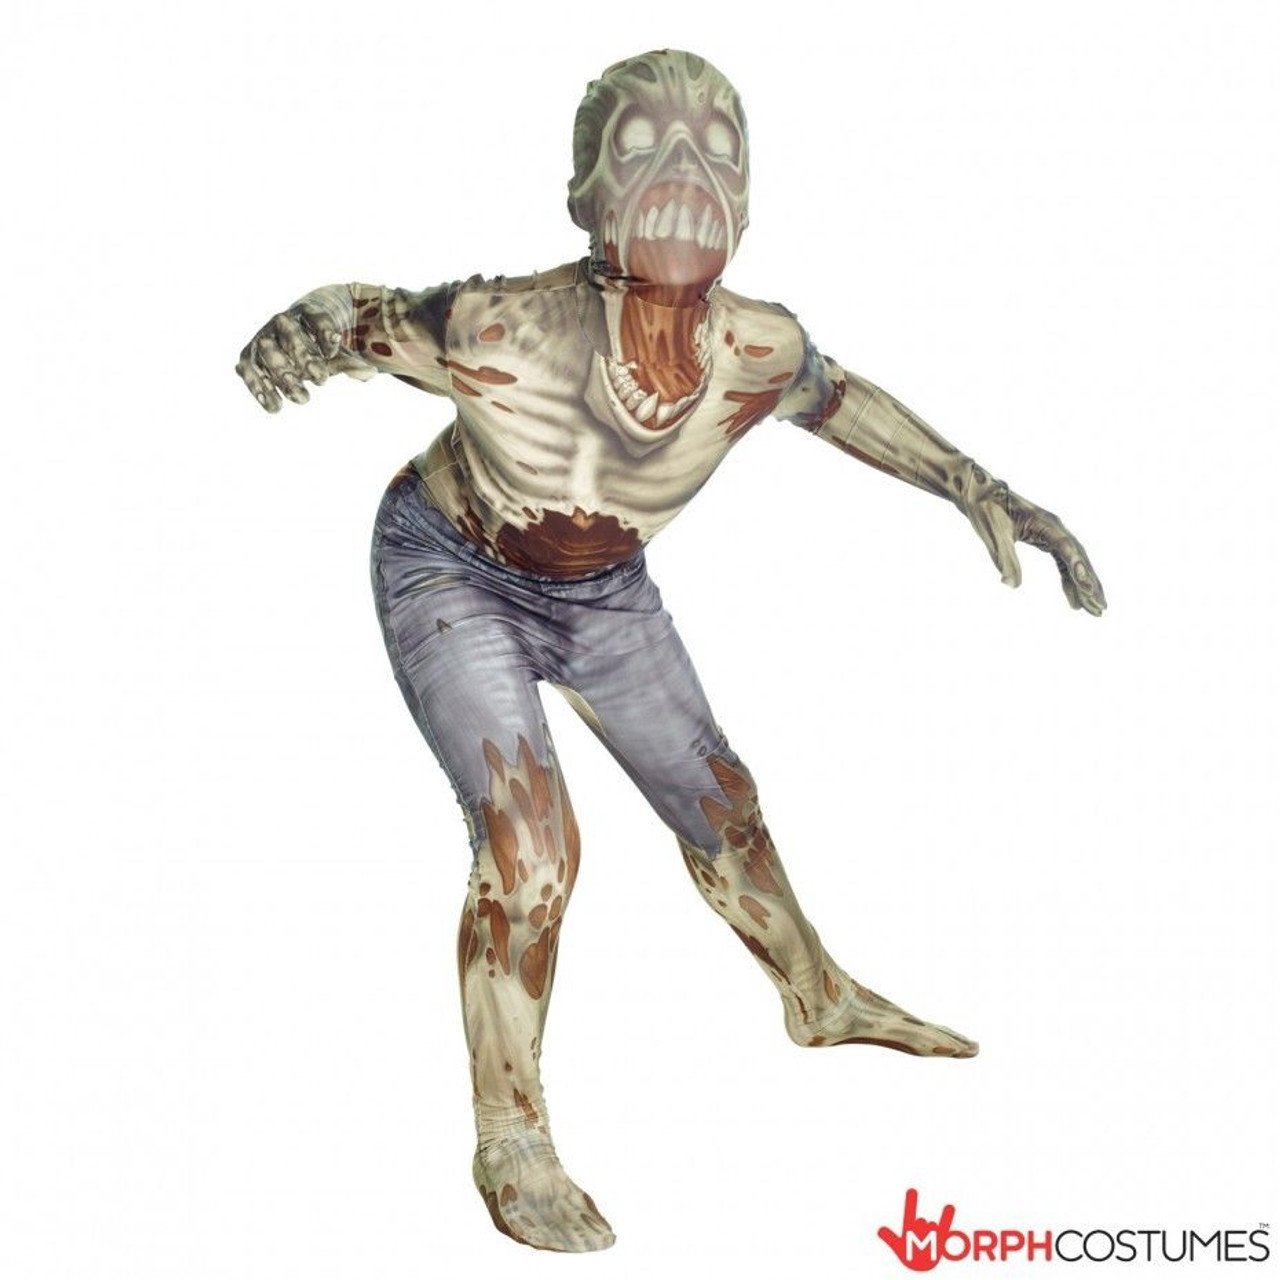 Morphsuits Zombie Kids Monster Horror Scary Creepy Halloween Costume 78,0257